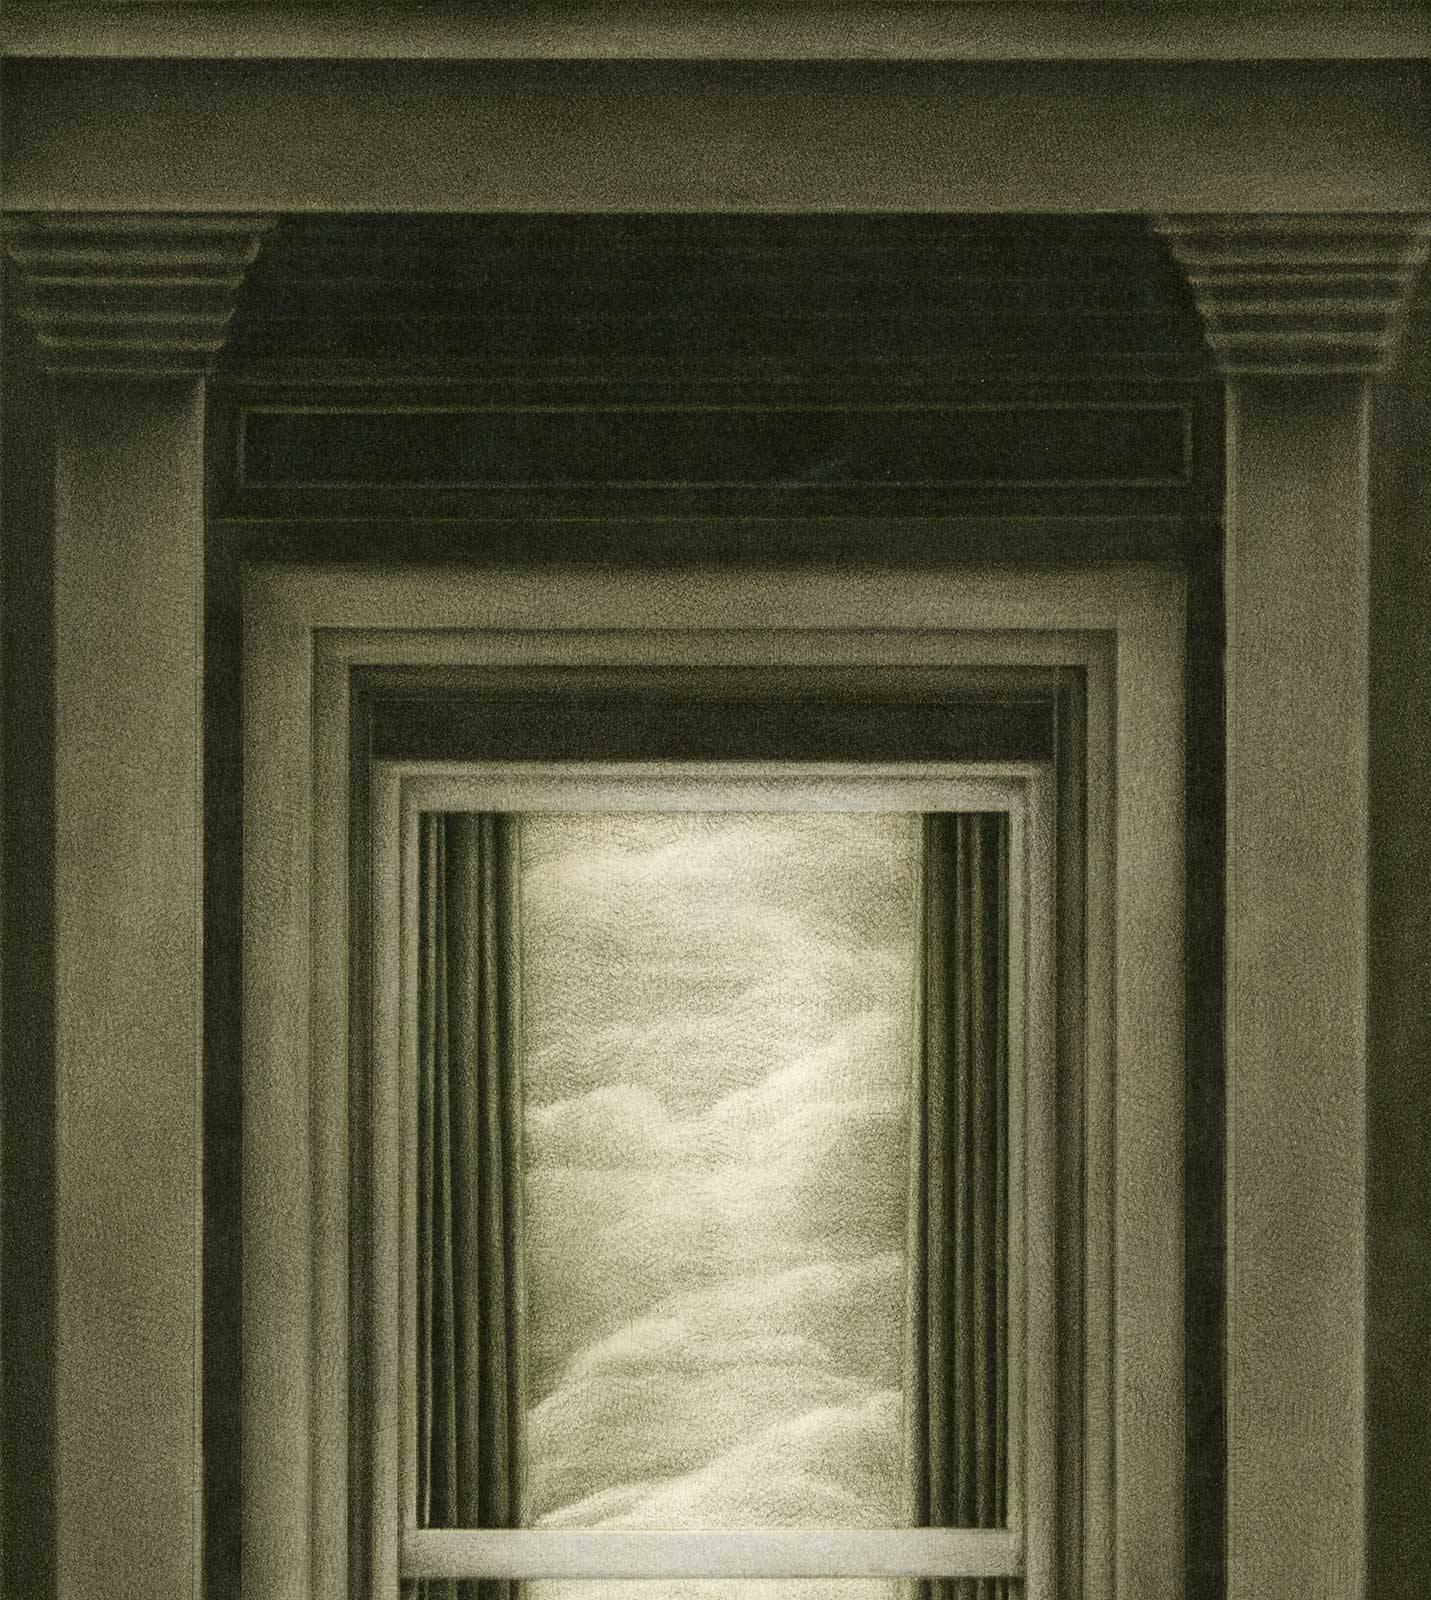 Cathedral of Dreams (Window to the world - Homage to Magritte) - Print by & Dorothea Wight - Cathedral of Dreams (Window to the world - Homage ...